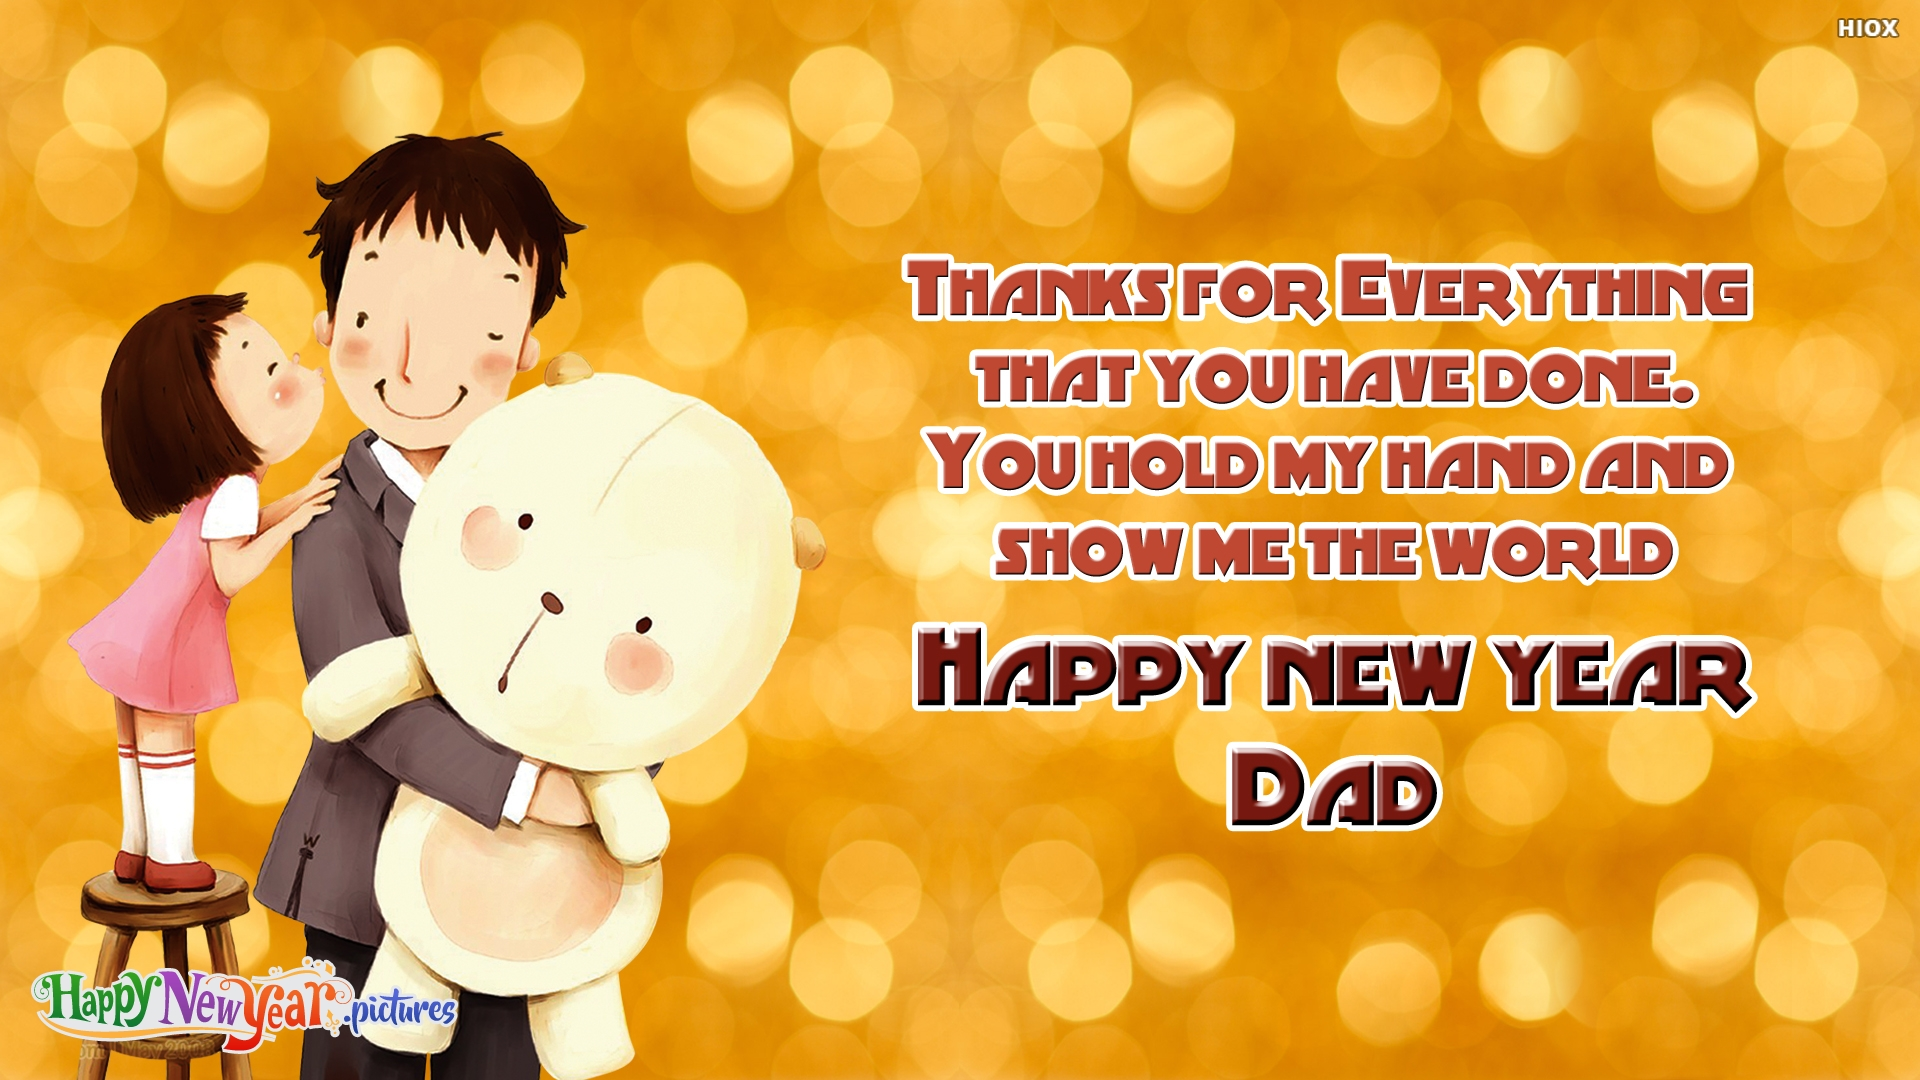 Happy New Year Papa